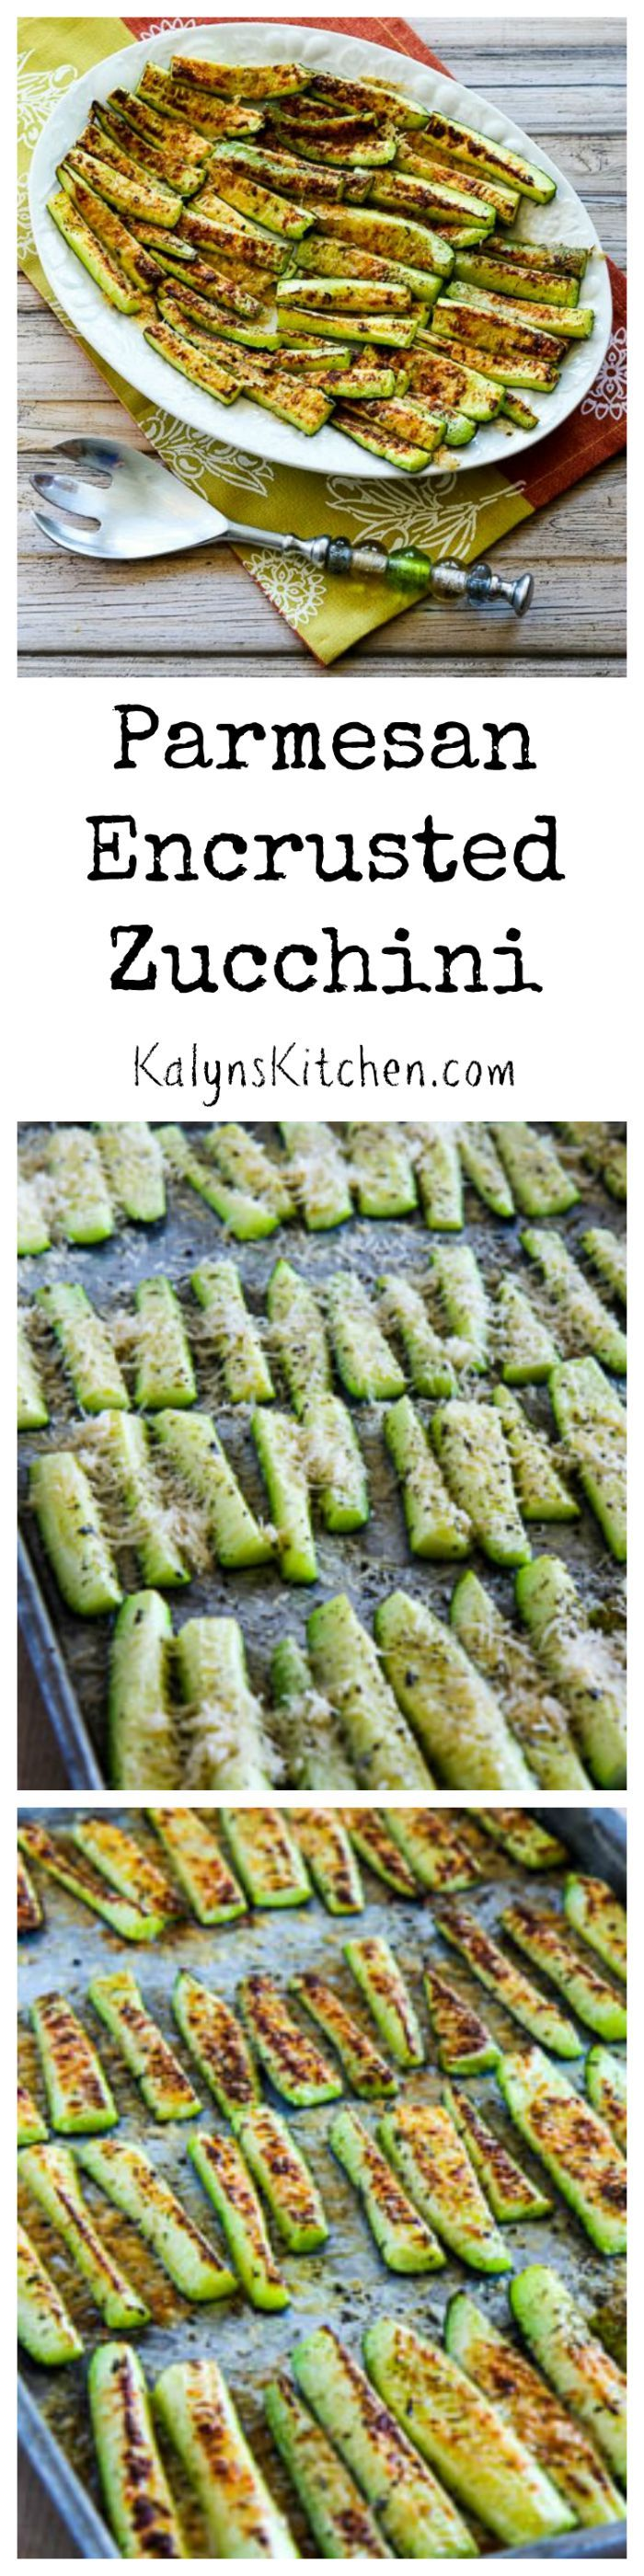 Parmesan Encrusted Zucchini | Beaches, South beach diet and South ...